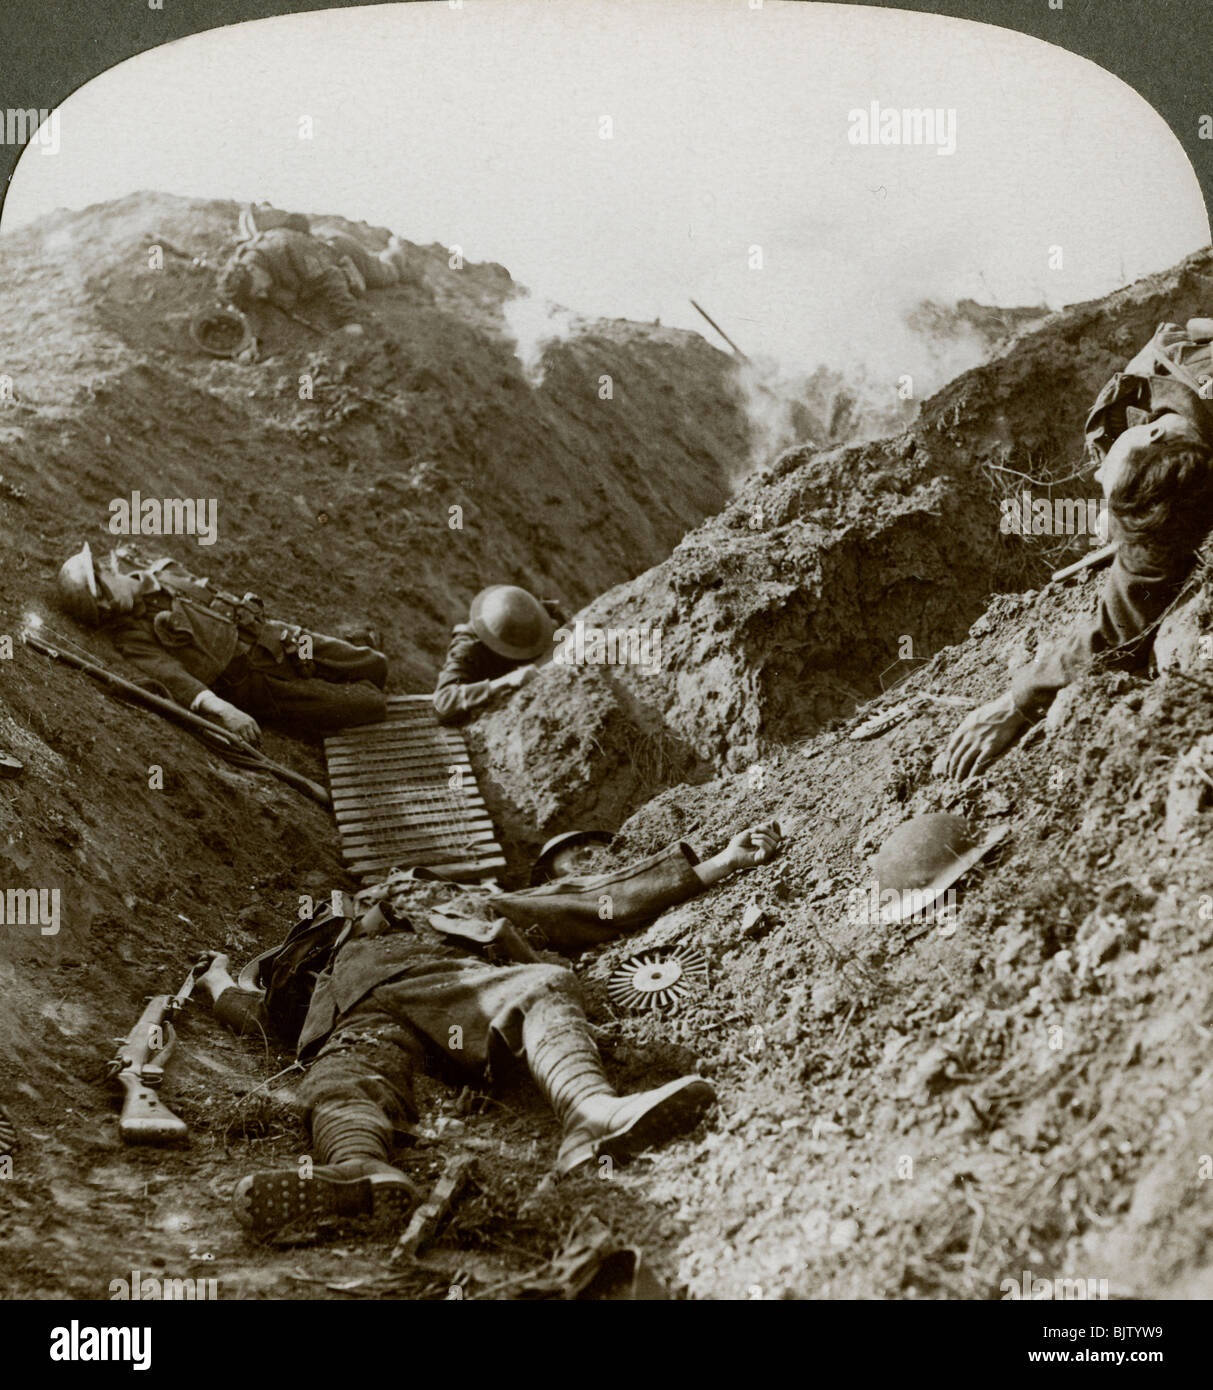 Soldiers of the 5th Army killed during the German offensive of 1918, Albert, France. - Stock Image